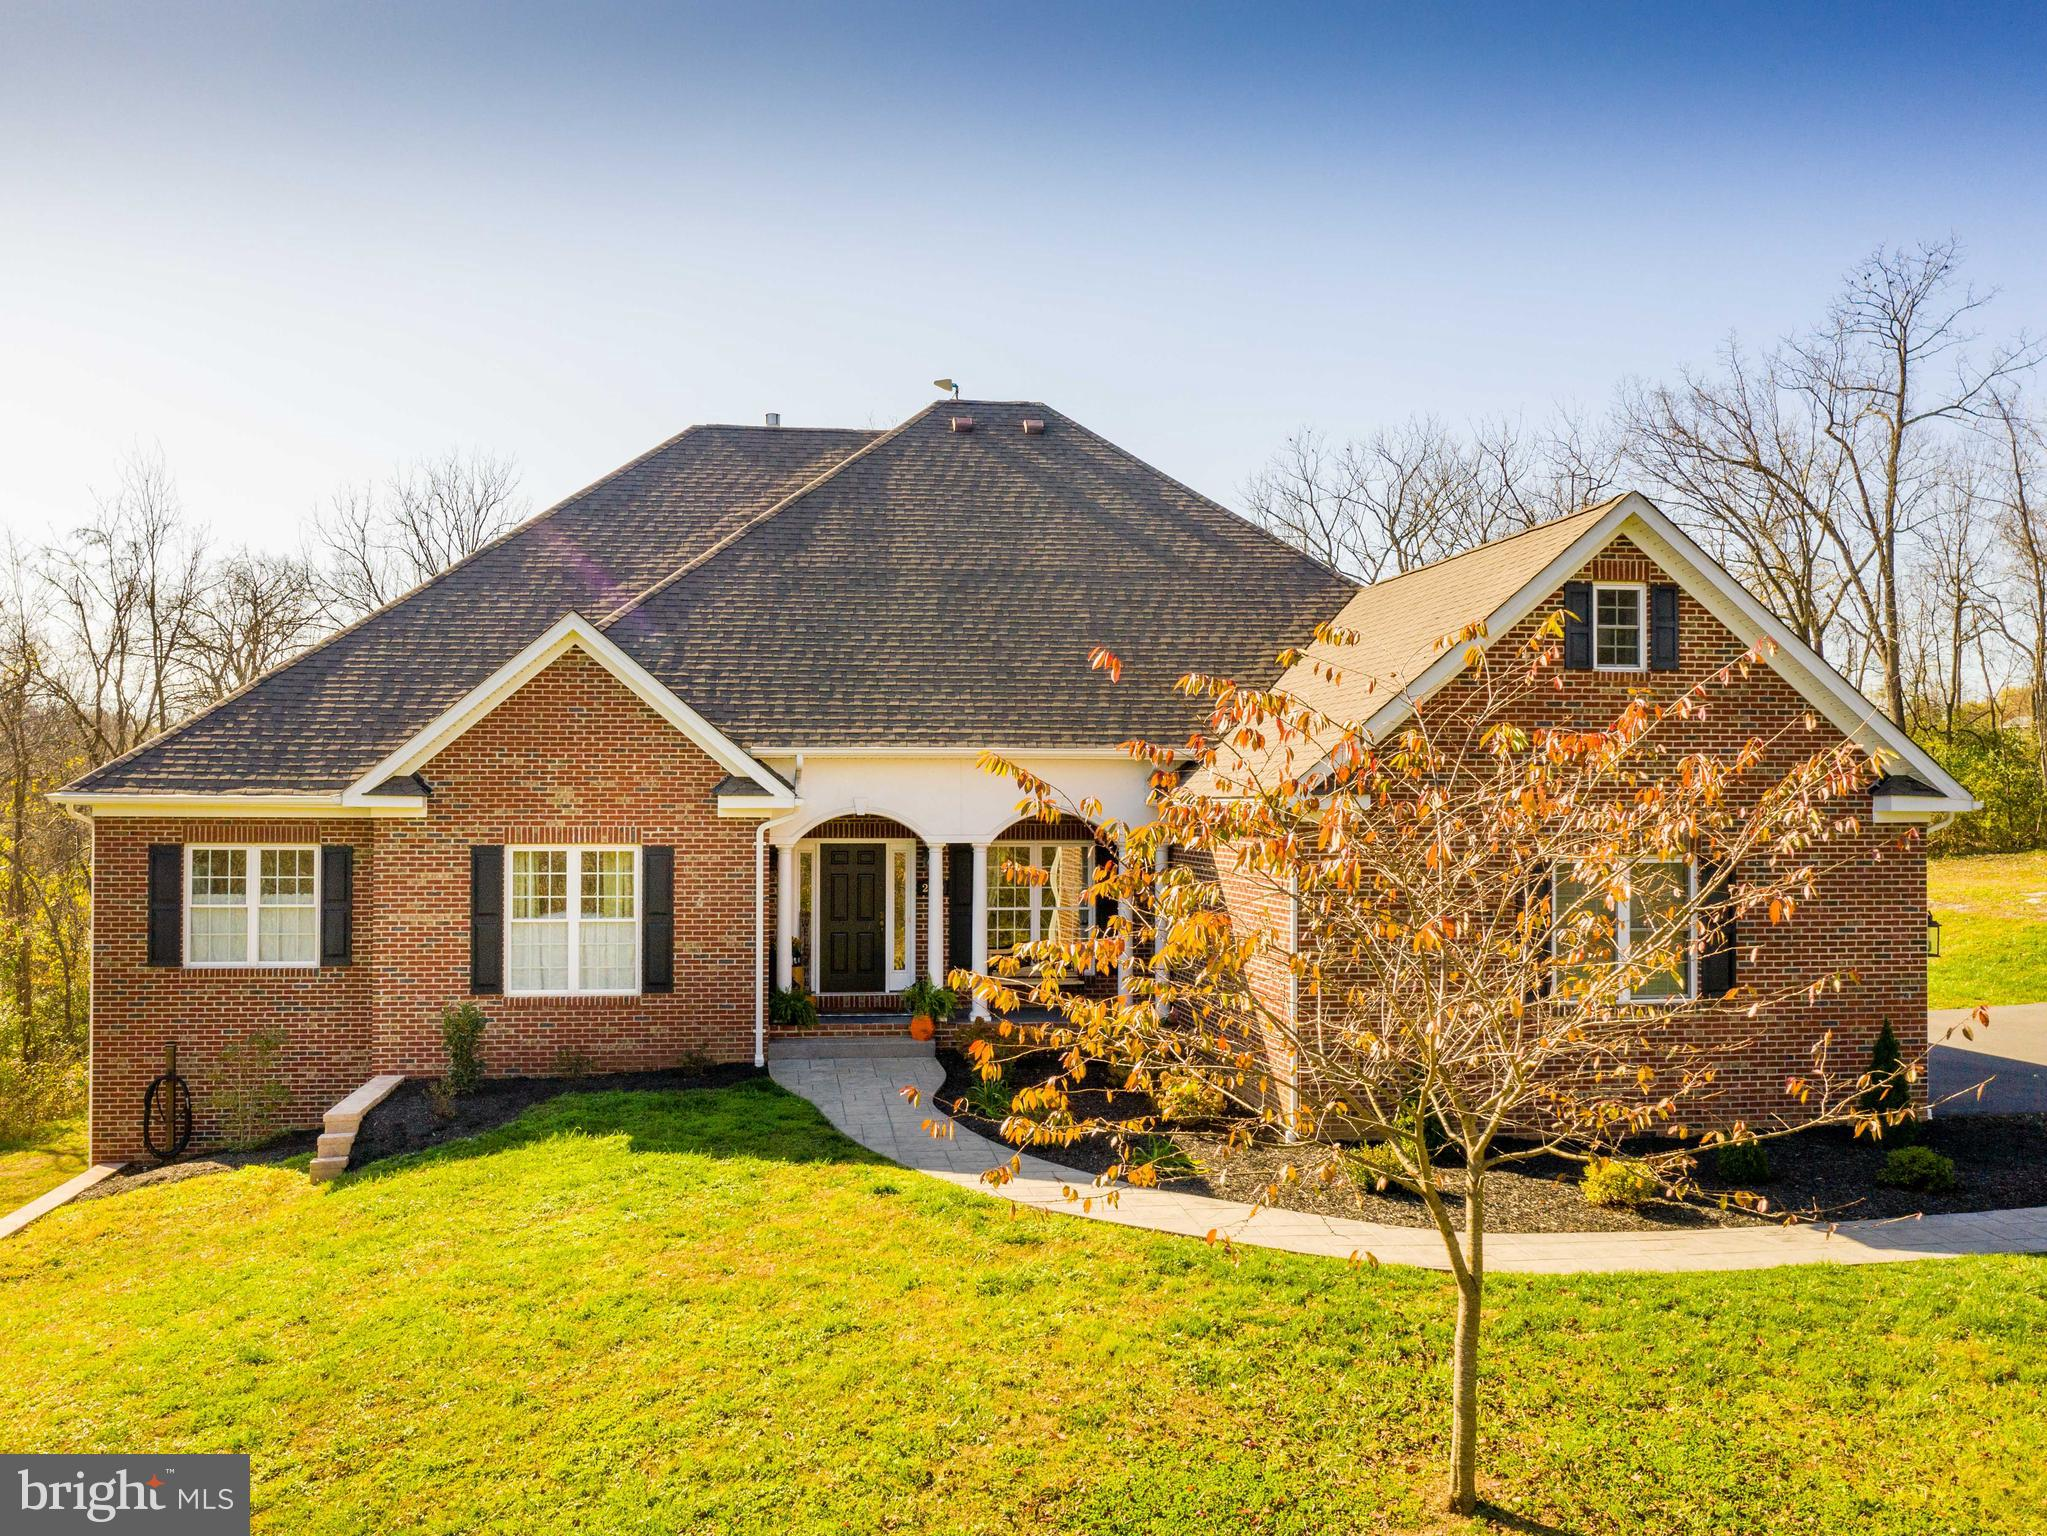 A hidden gem just off of Apple Pie Ridge! This home is tucked away on a private & well manicured, 2